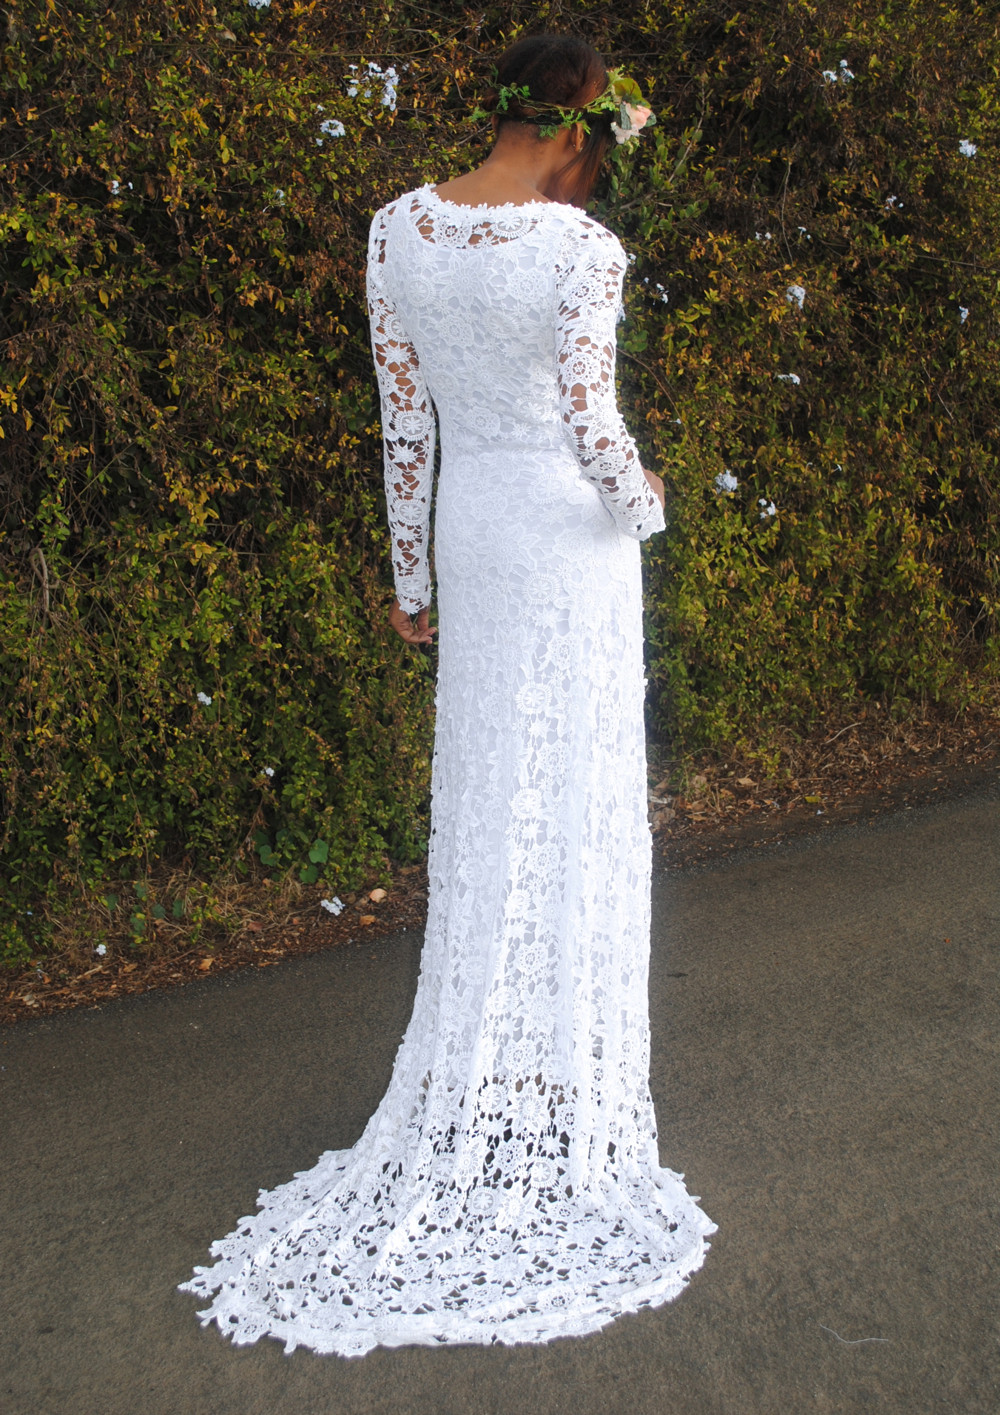 Crochet Lace Wedding Dress Awesome Ivory or White Crochet Lace Bohemian Wedding Dress Of Great 48 Ideas Crochet Lace Wedding Dress